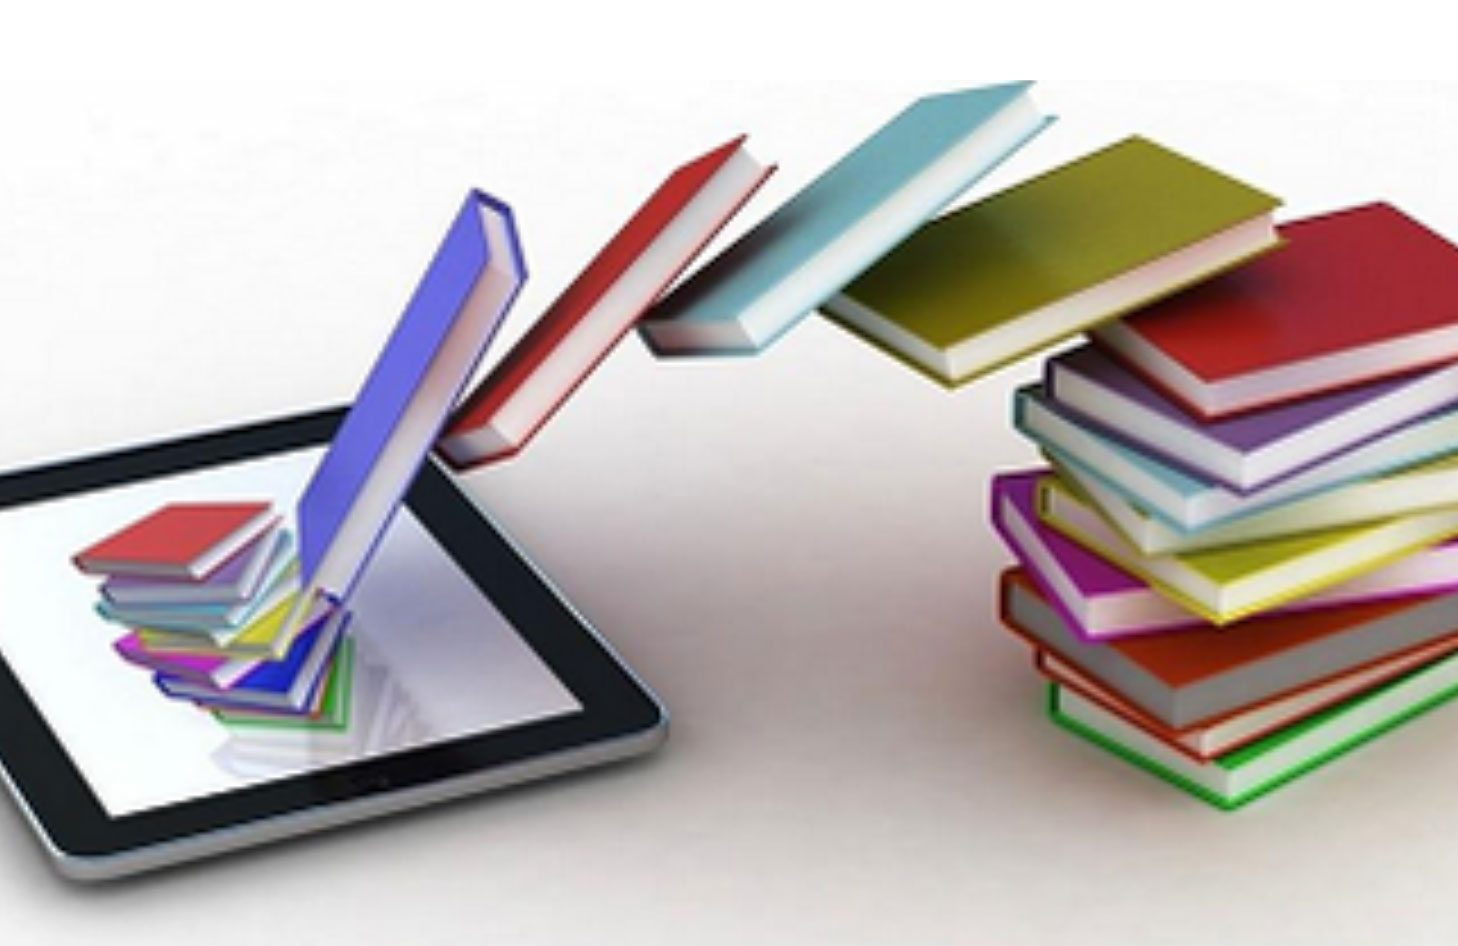 ebooks is an electronic resource that can stream books to your devices